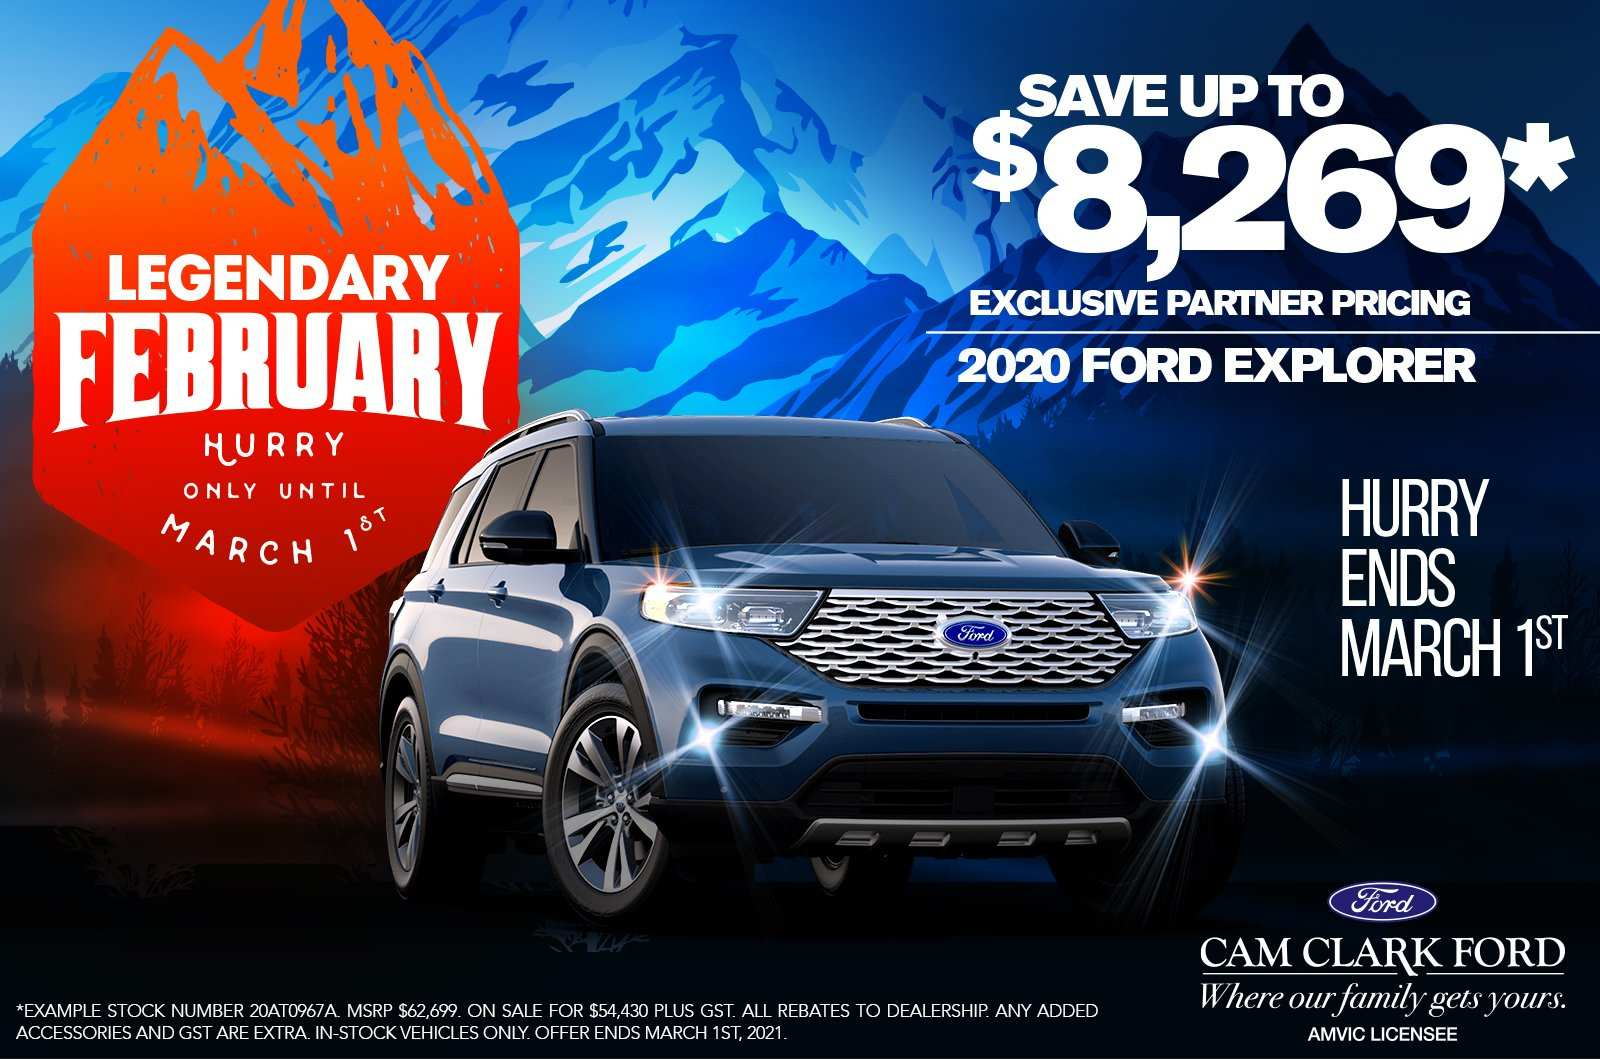 http://SAVE%20up%20to%20$8269%20on%202020%20Explorers